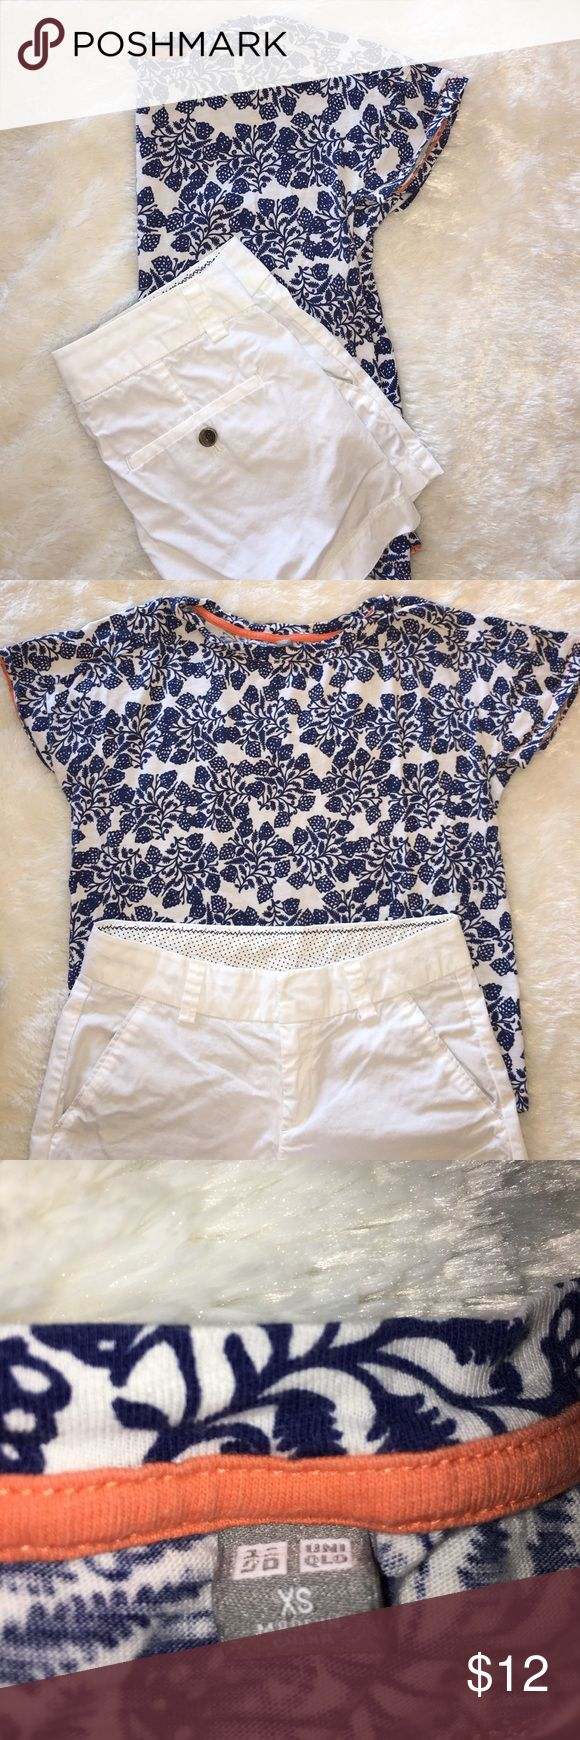 BUNDLE Uniqlo shorts and two Tops BUNDLE of 3! Includes a Uniqlo blue and a pink flowered soft 100% Cotton top Size XS, with crisp white Uniqlo size 0 shorts. All three items have been washed and worn only once! 🌺 Uniqlo Tops